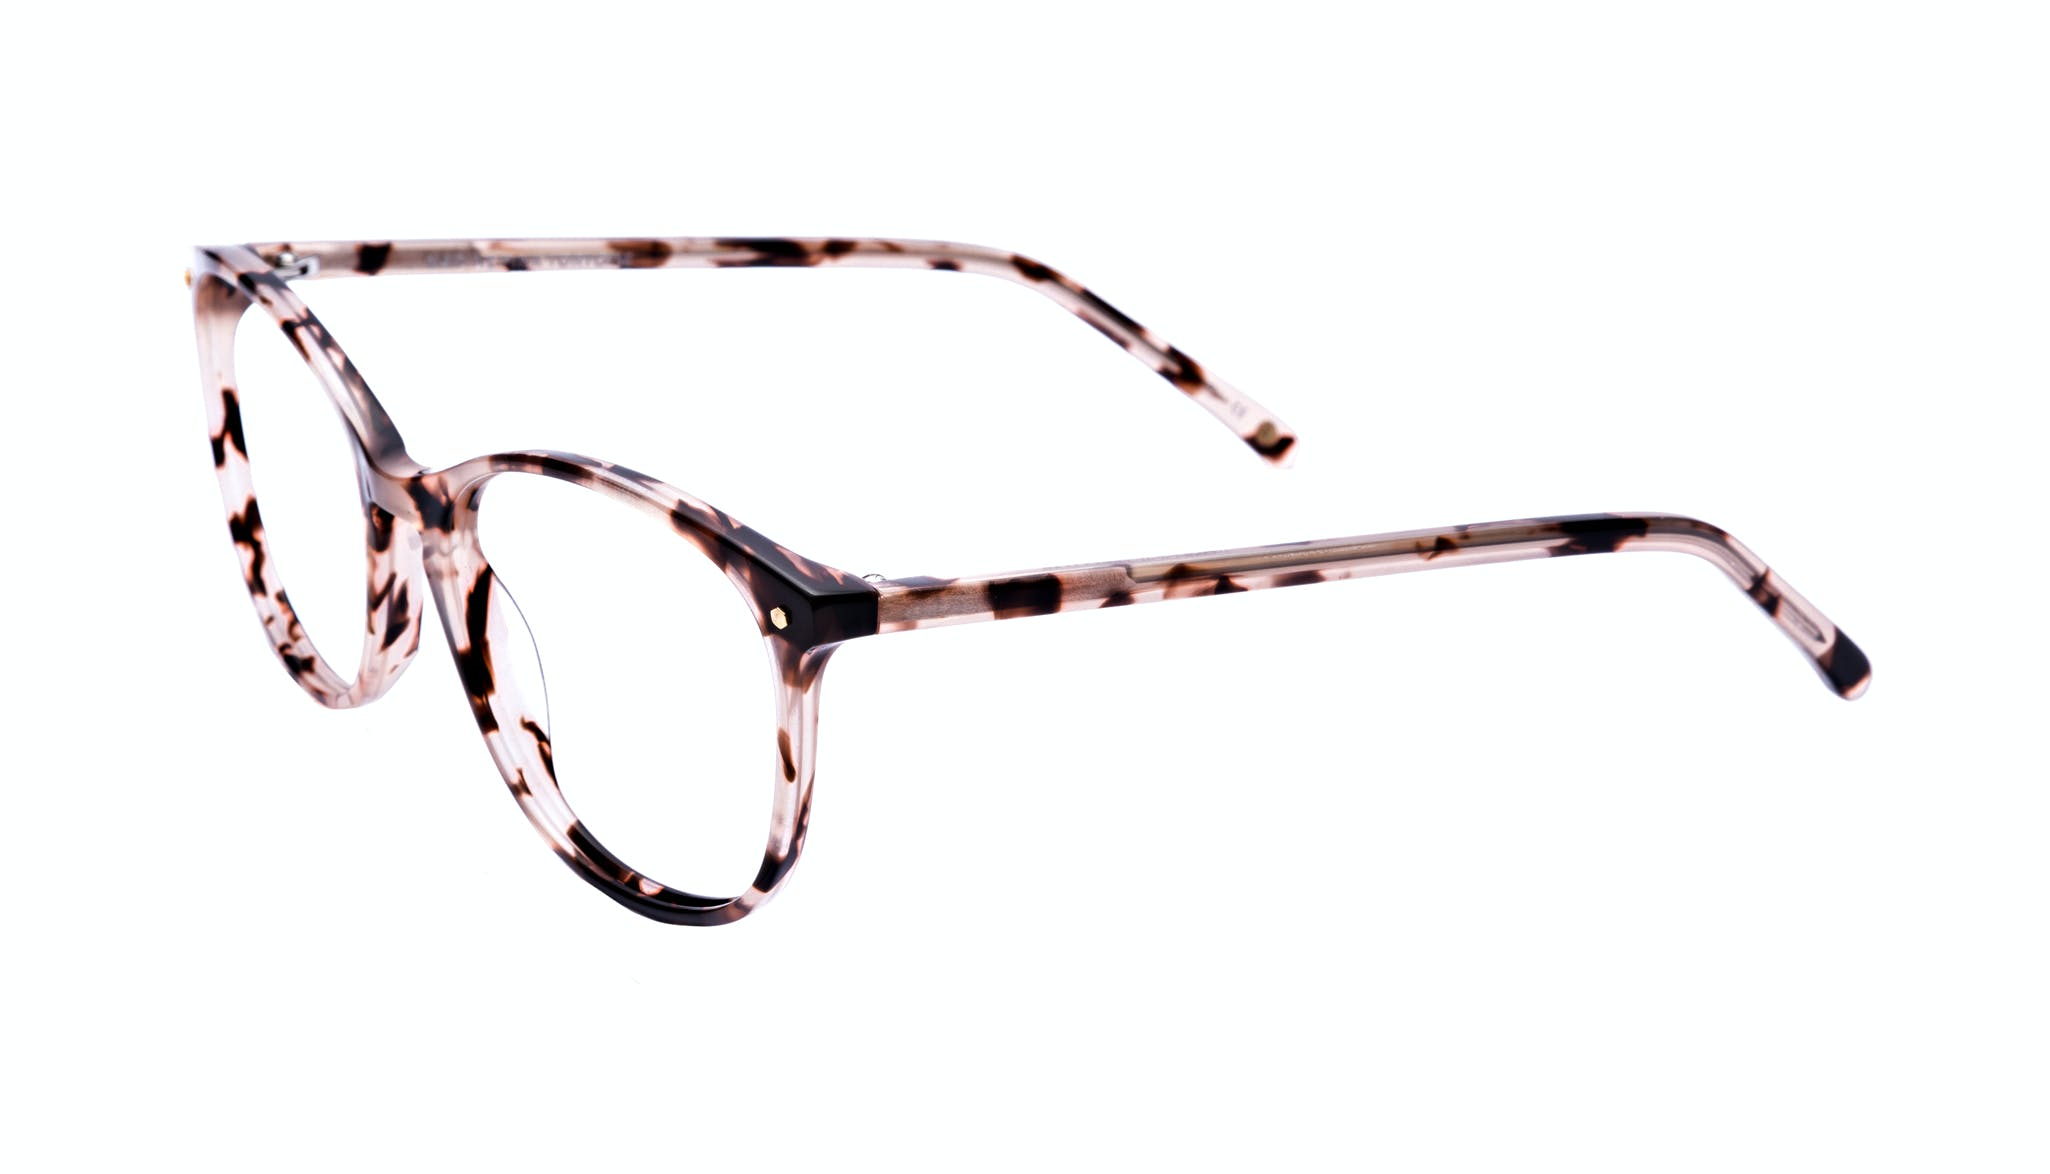 Affordable Fashion Glasses Rectangle Square Round Eyeglasses Women Nadine Pink Tortoise Tilt